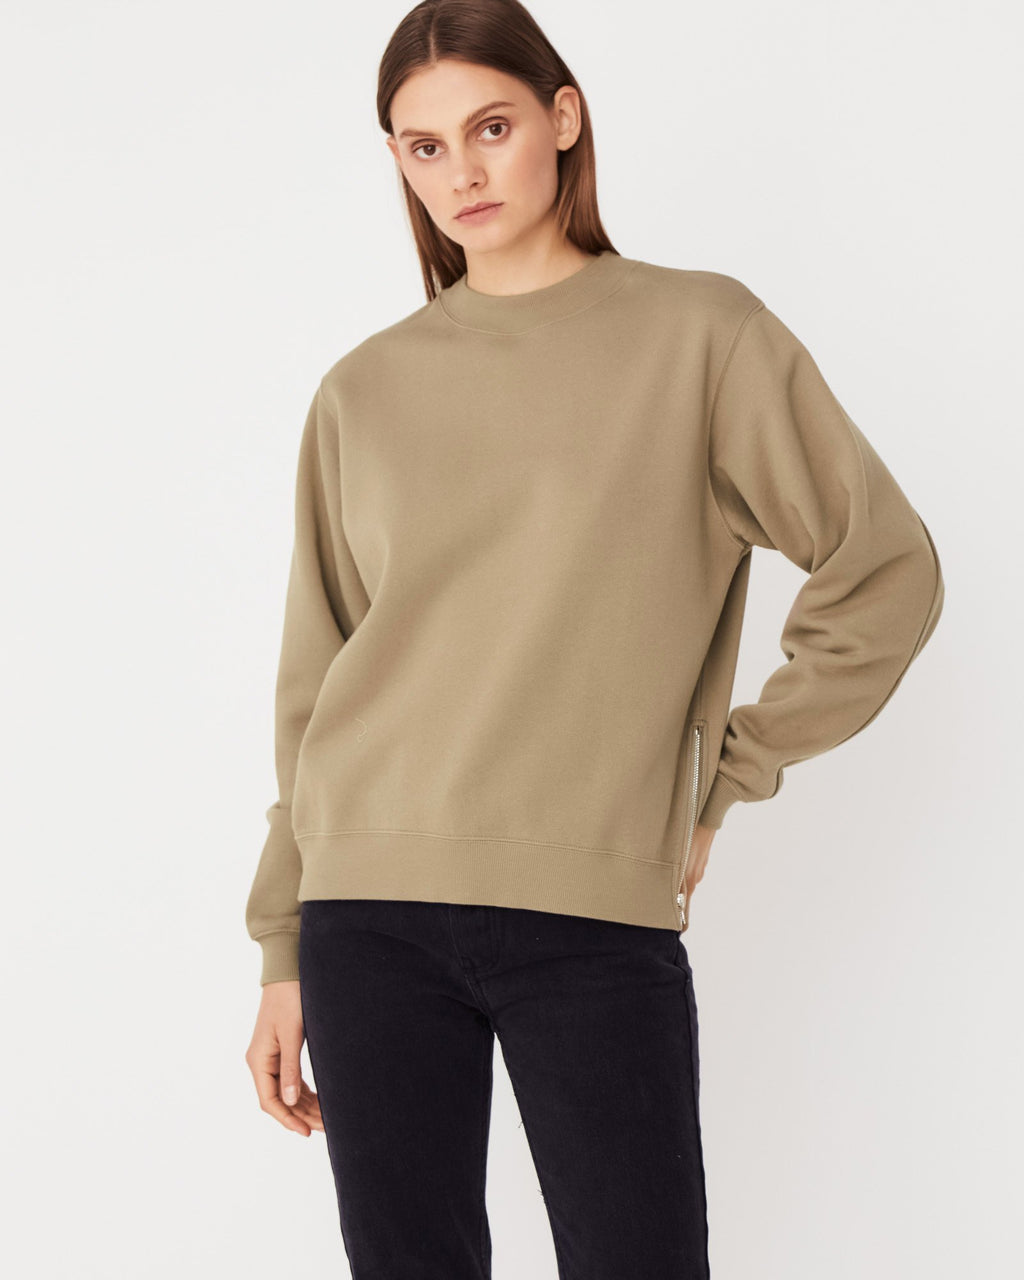 Allusive Fleece / Olive